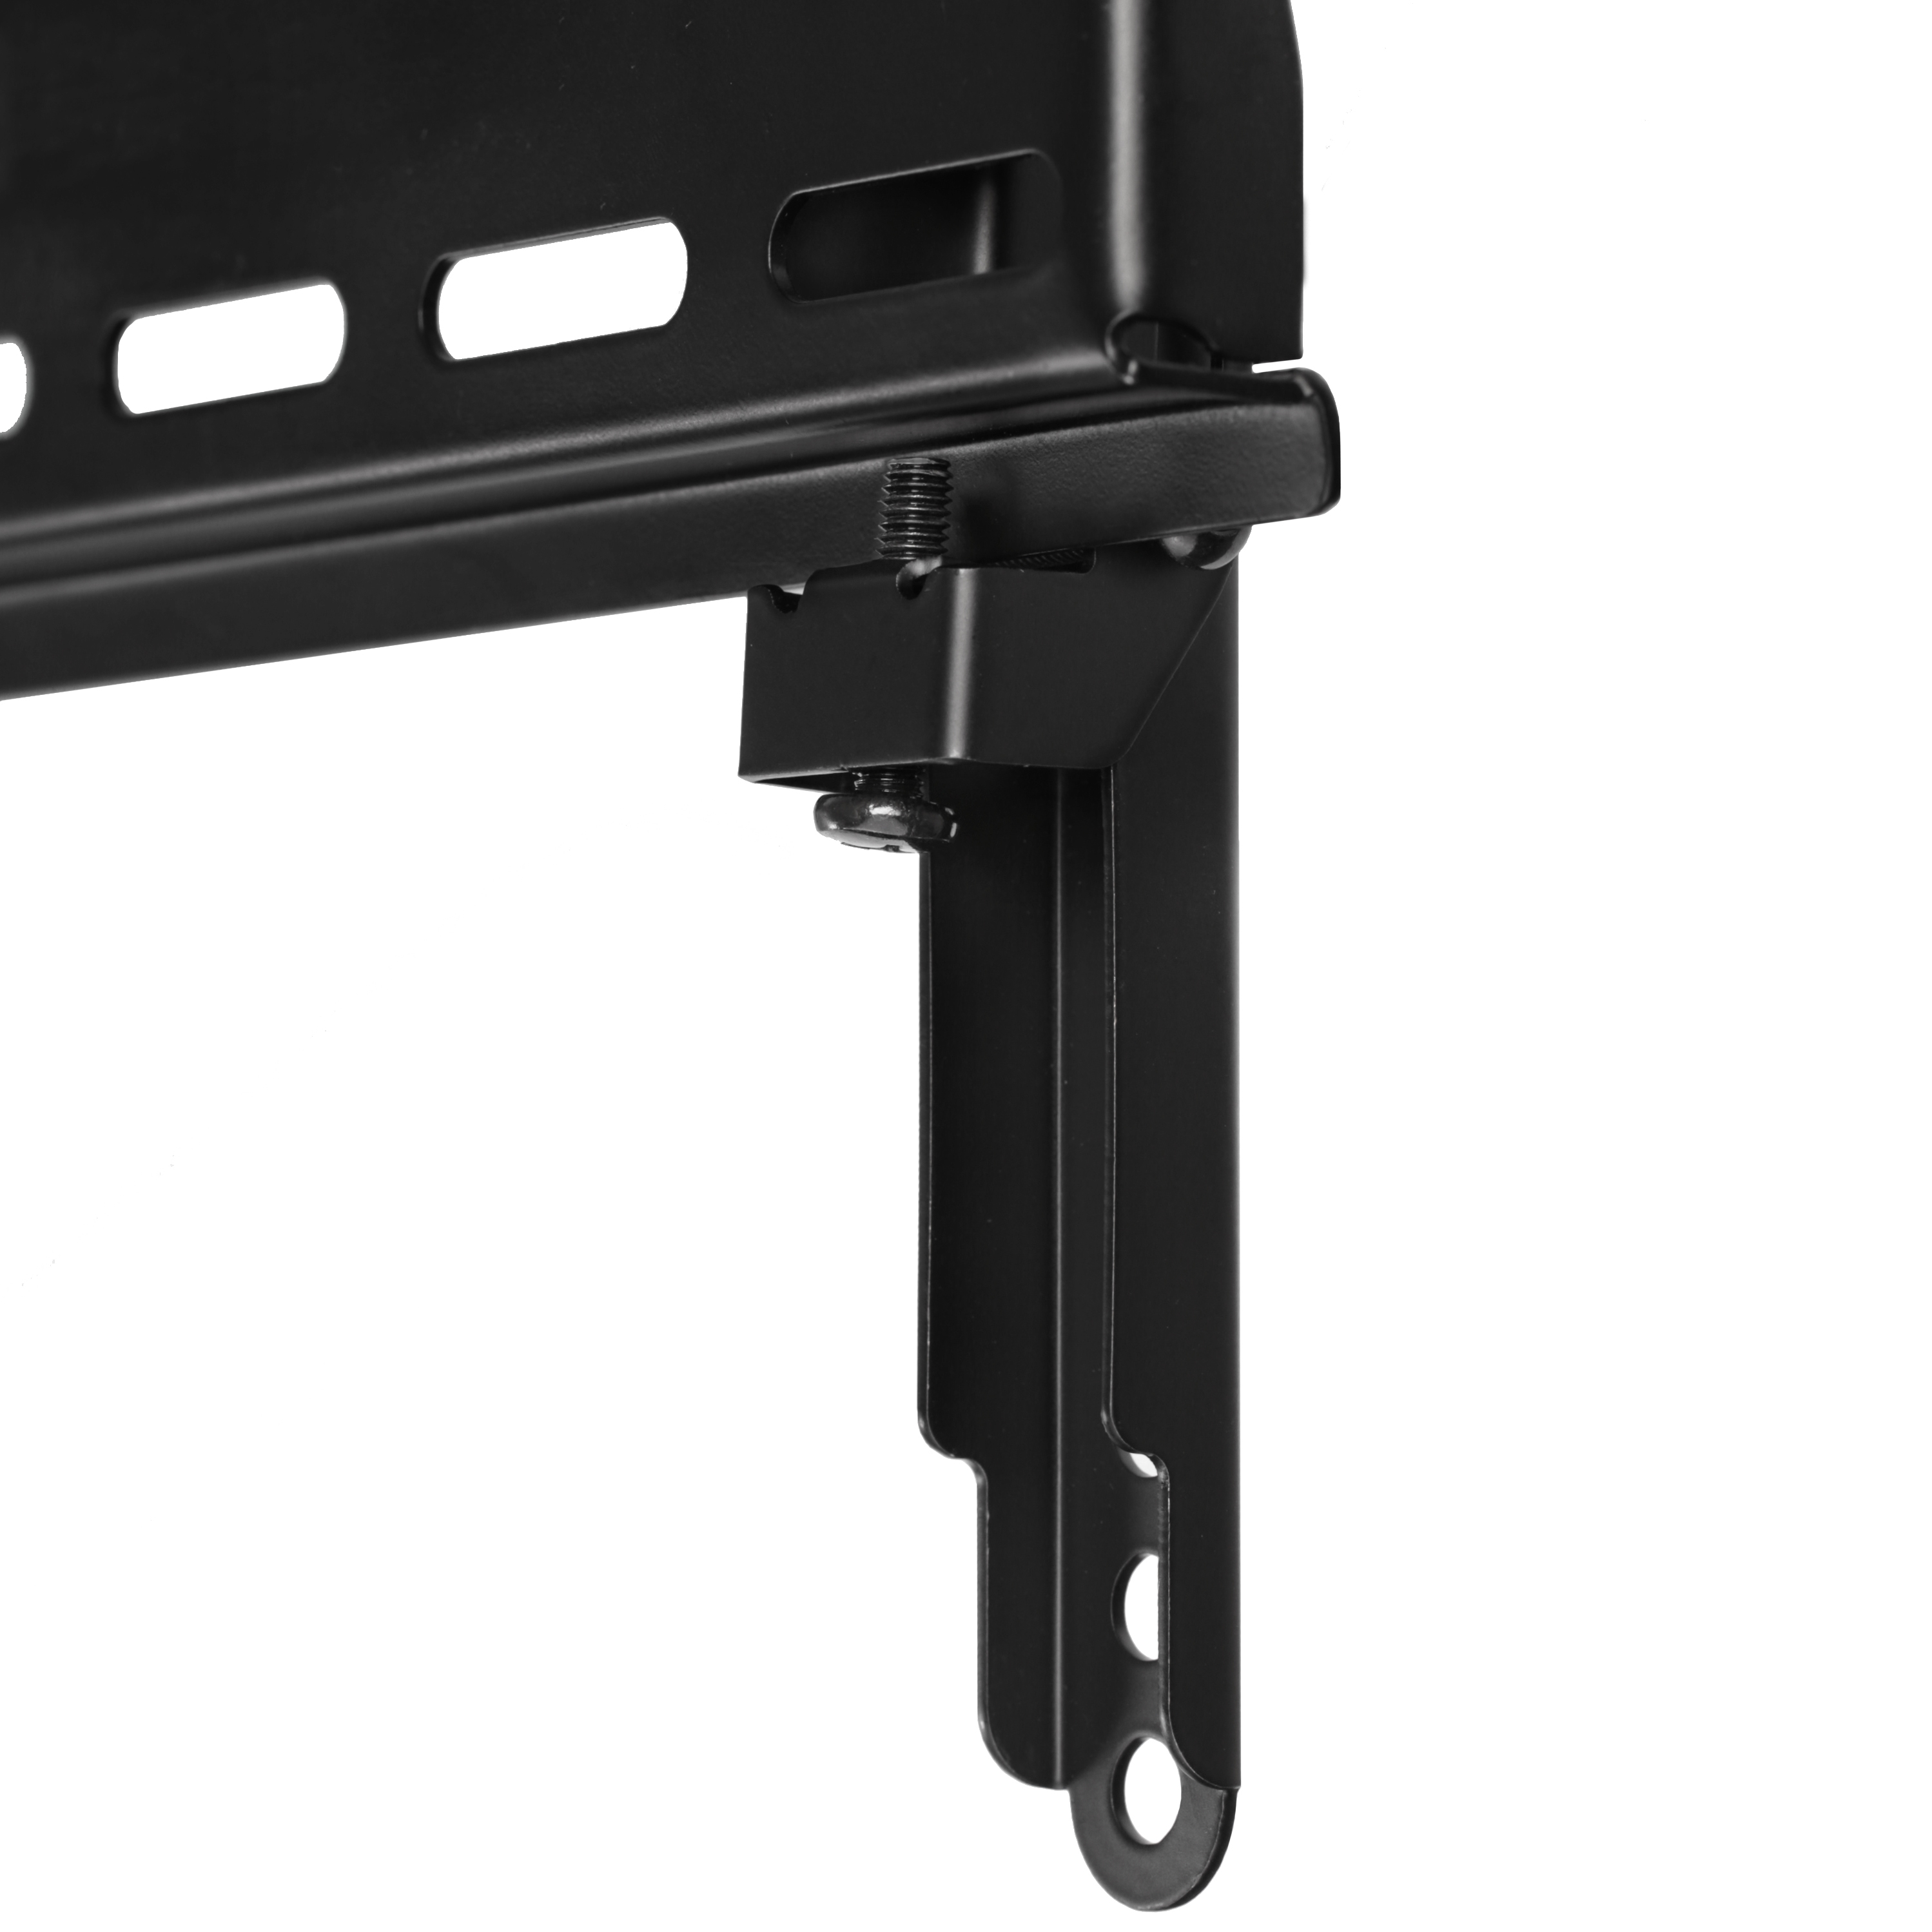 cheetah mounts aplcmb plasma lcd tv tilt and swivel ceiling mount for 32 to 63inch black with one 15u0027 twisted veins hdmi cable - Ceiling Mount Tv